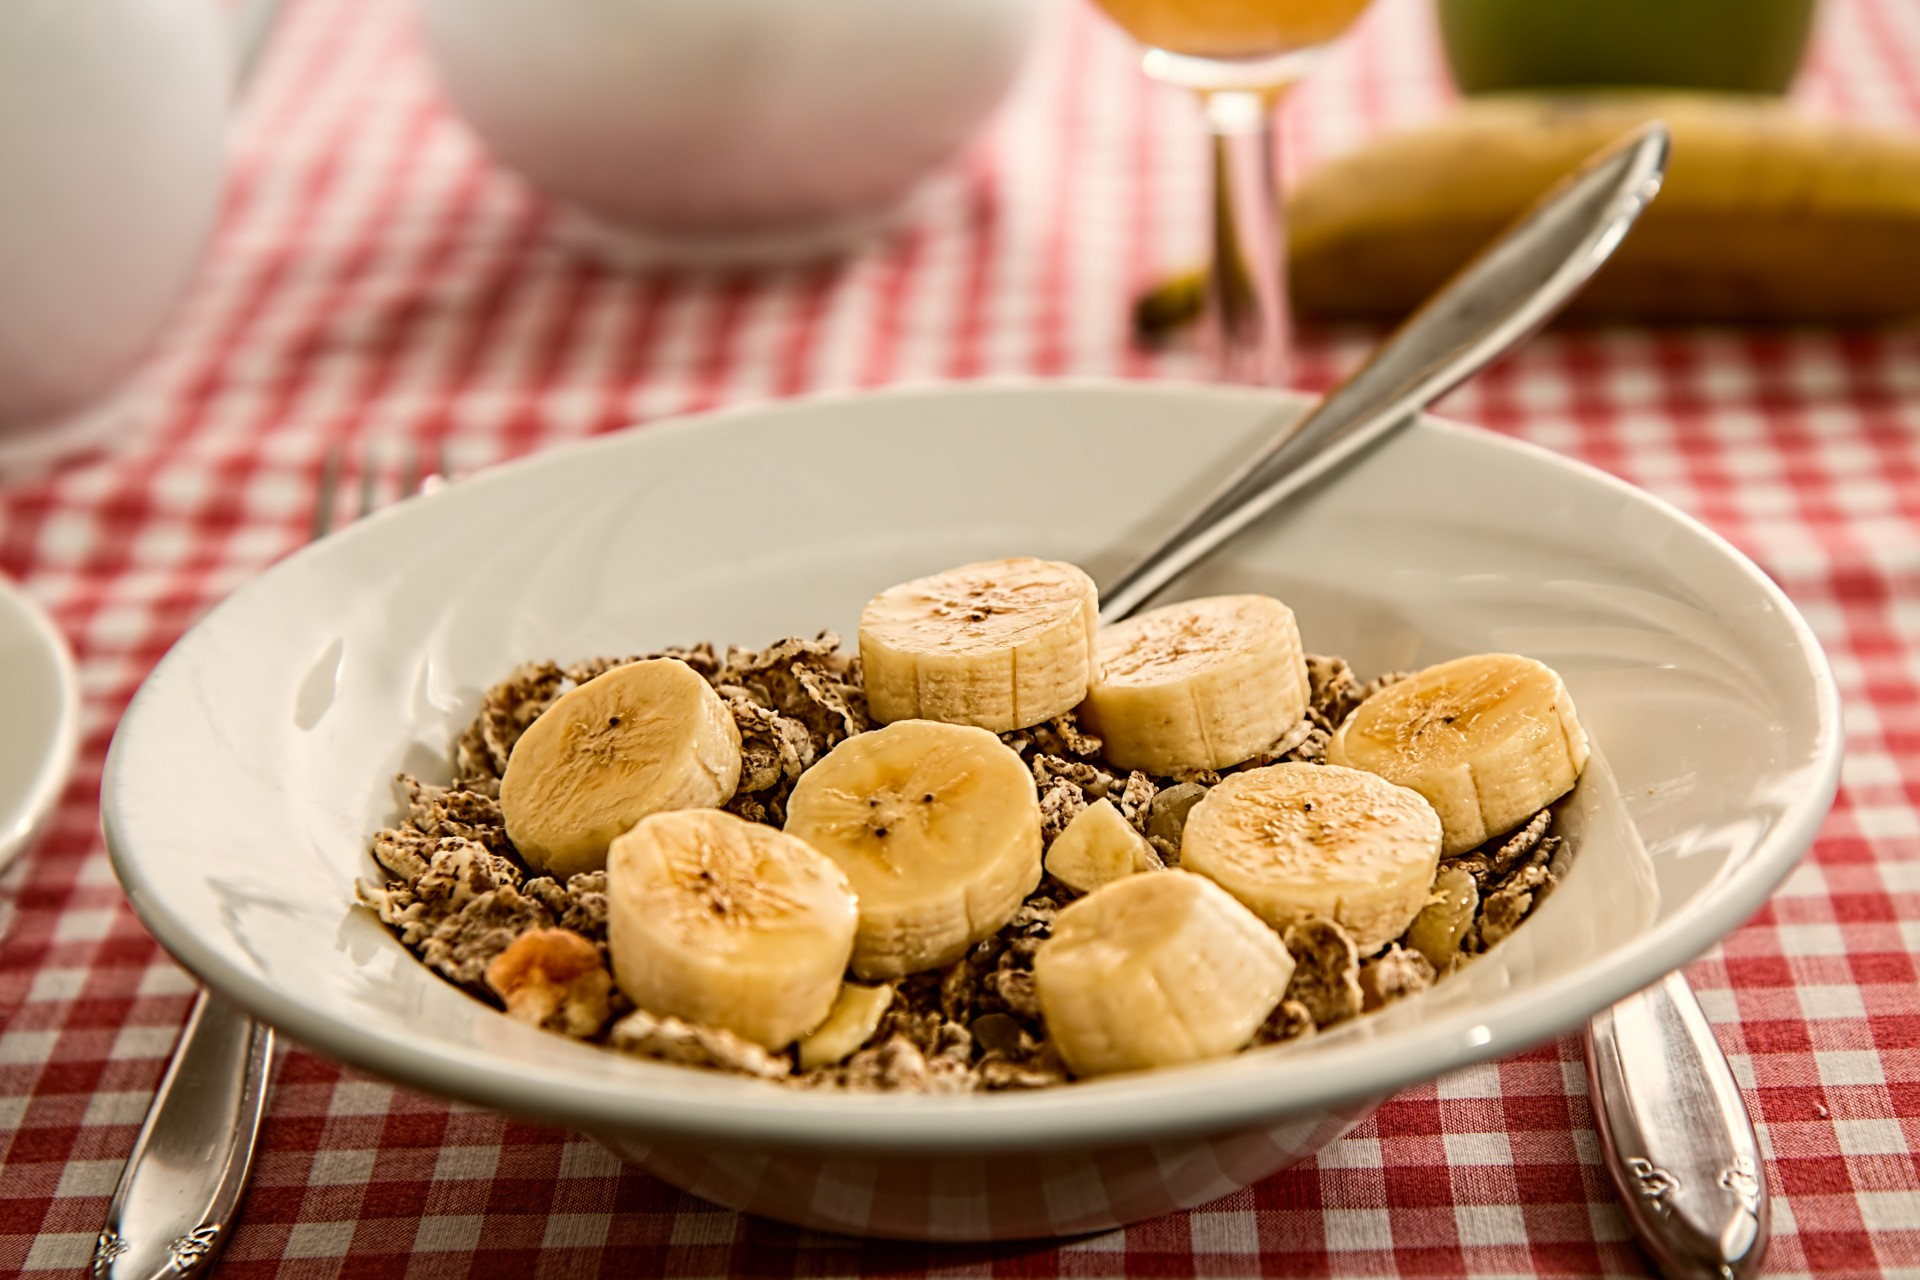 A fibrous cereal with fruit